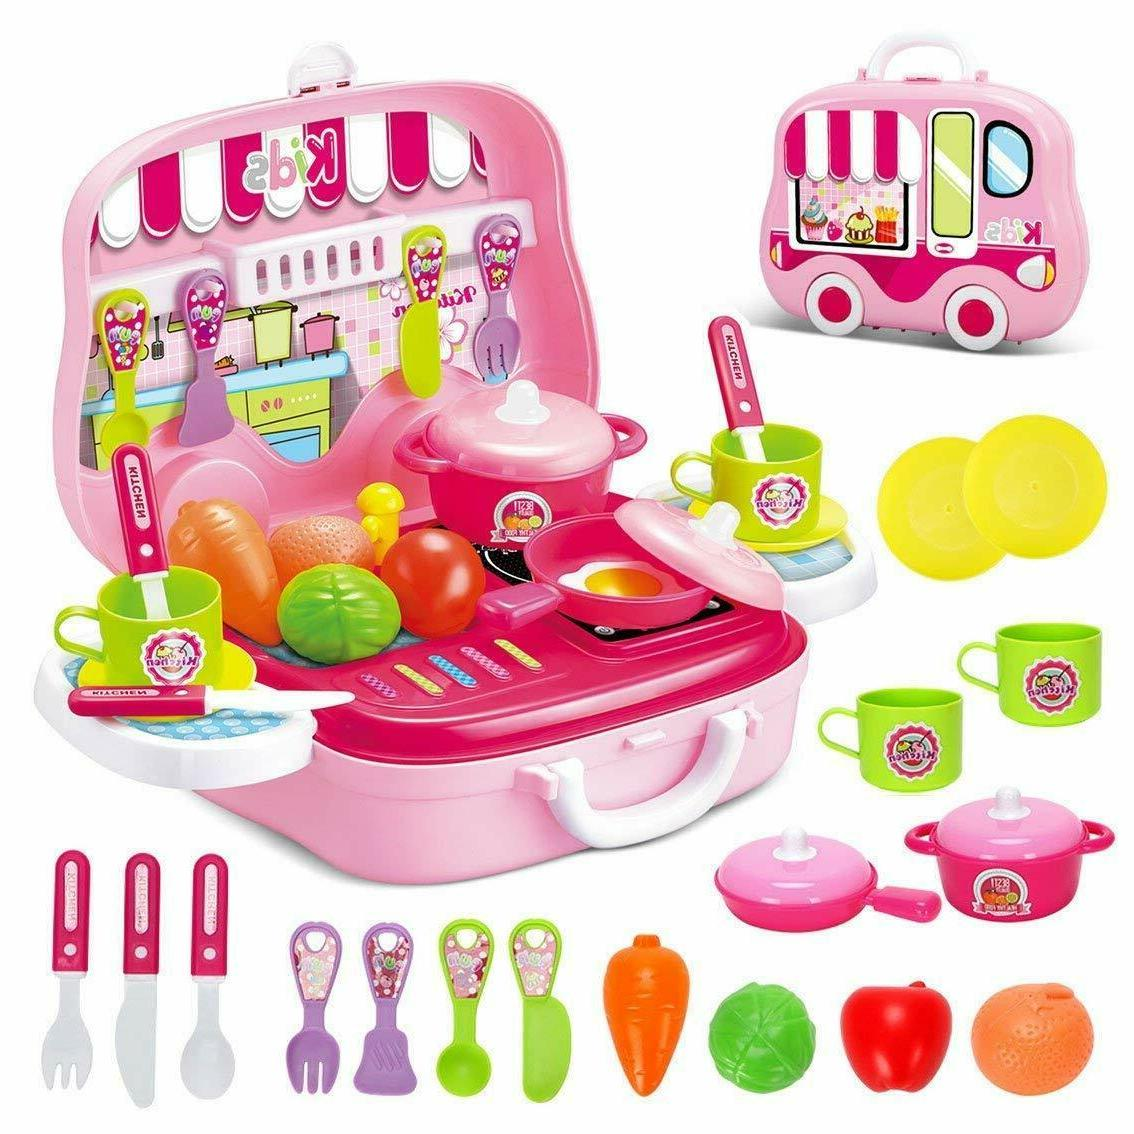 Kitchen Play Girls Cooking Playset for Play